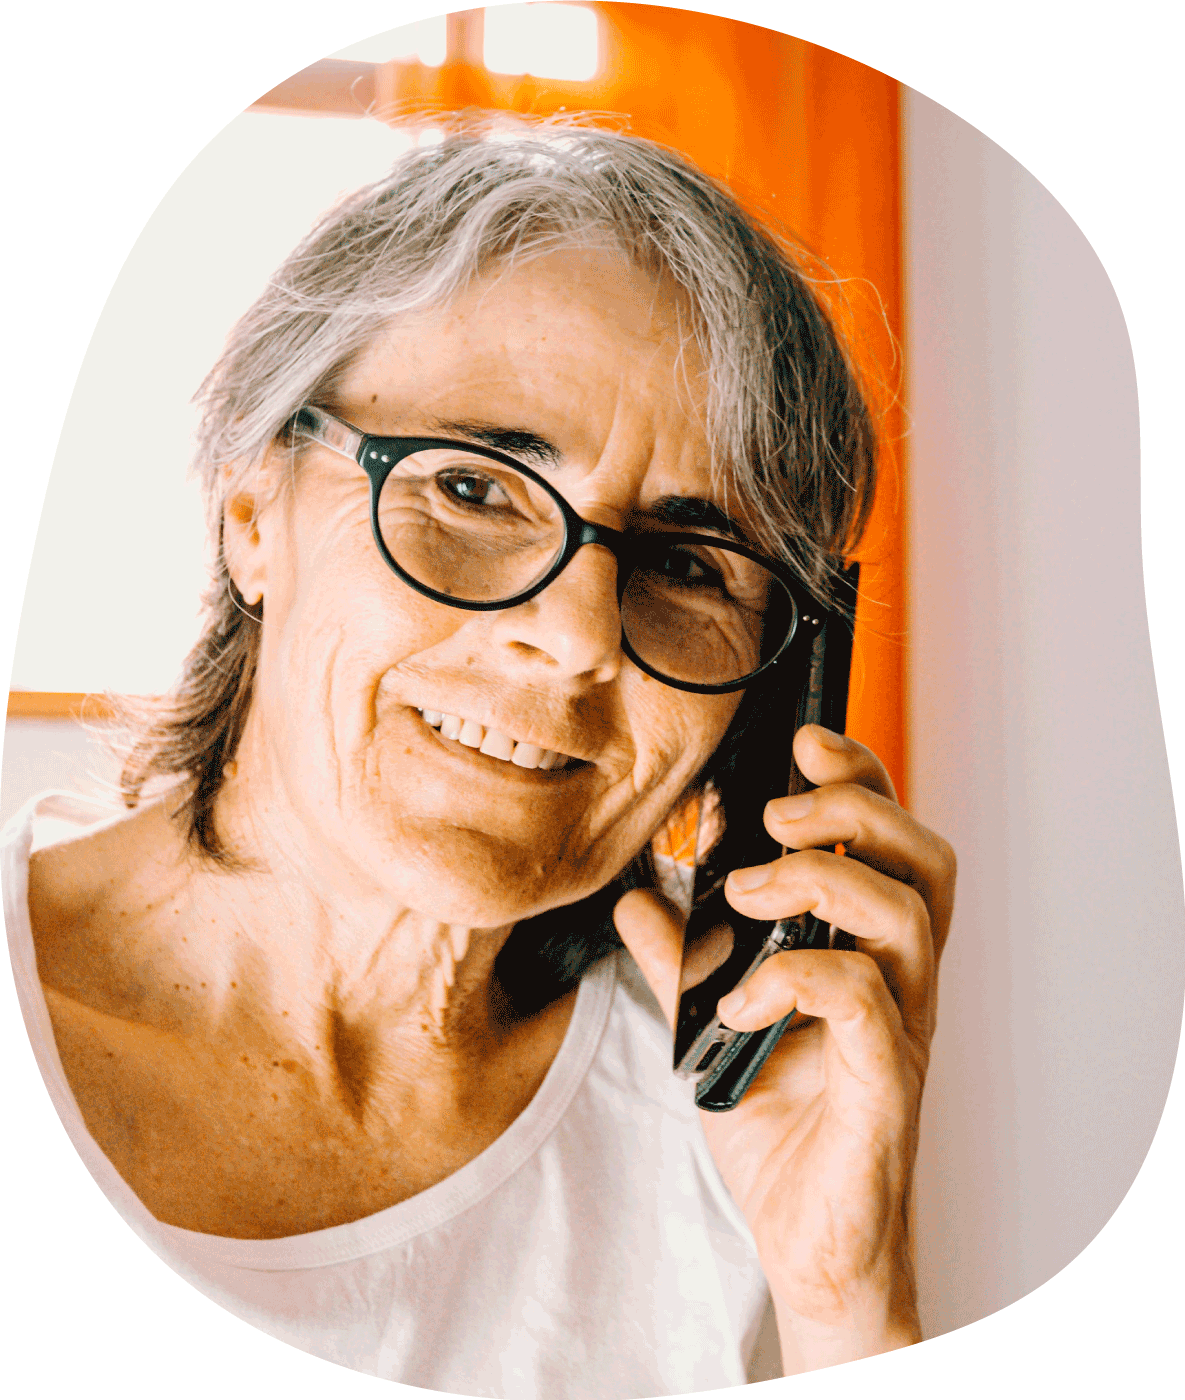 Photograph of older woman doing a telehealth consult on the phone